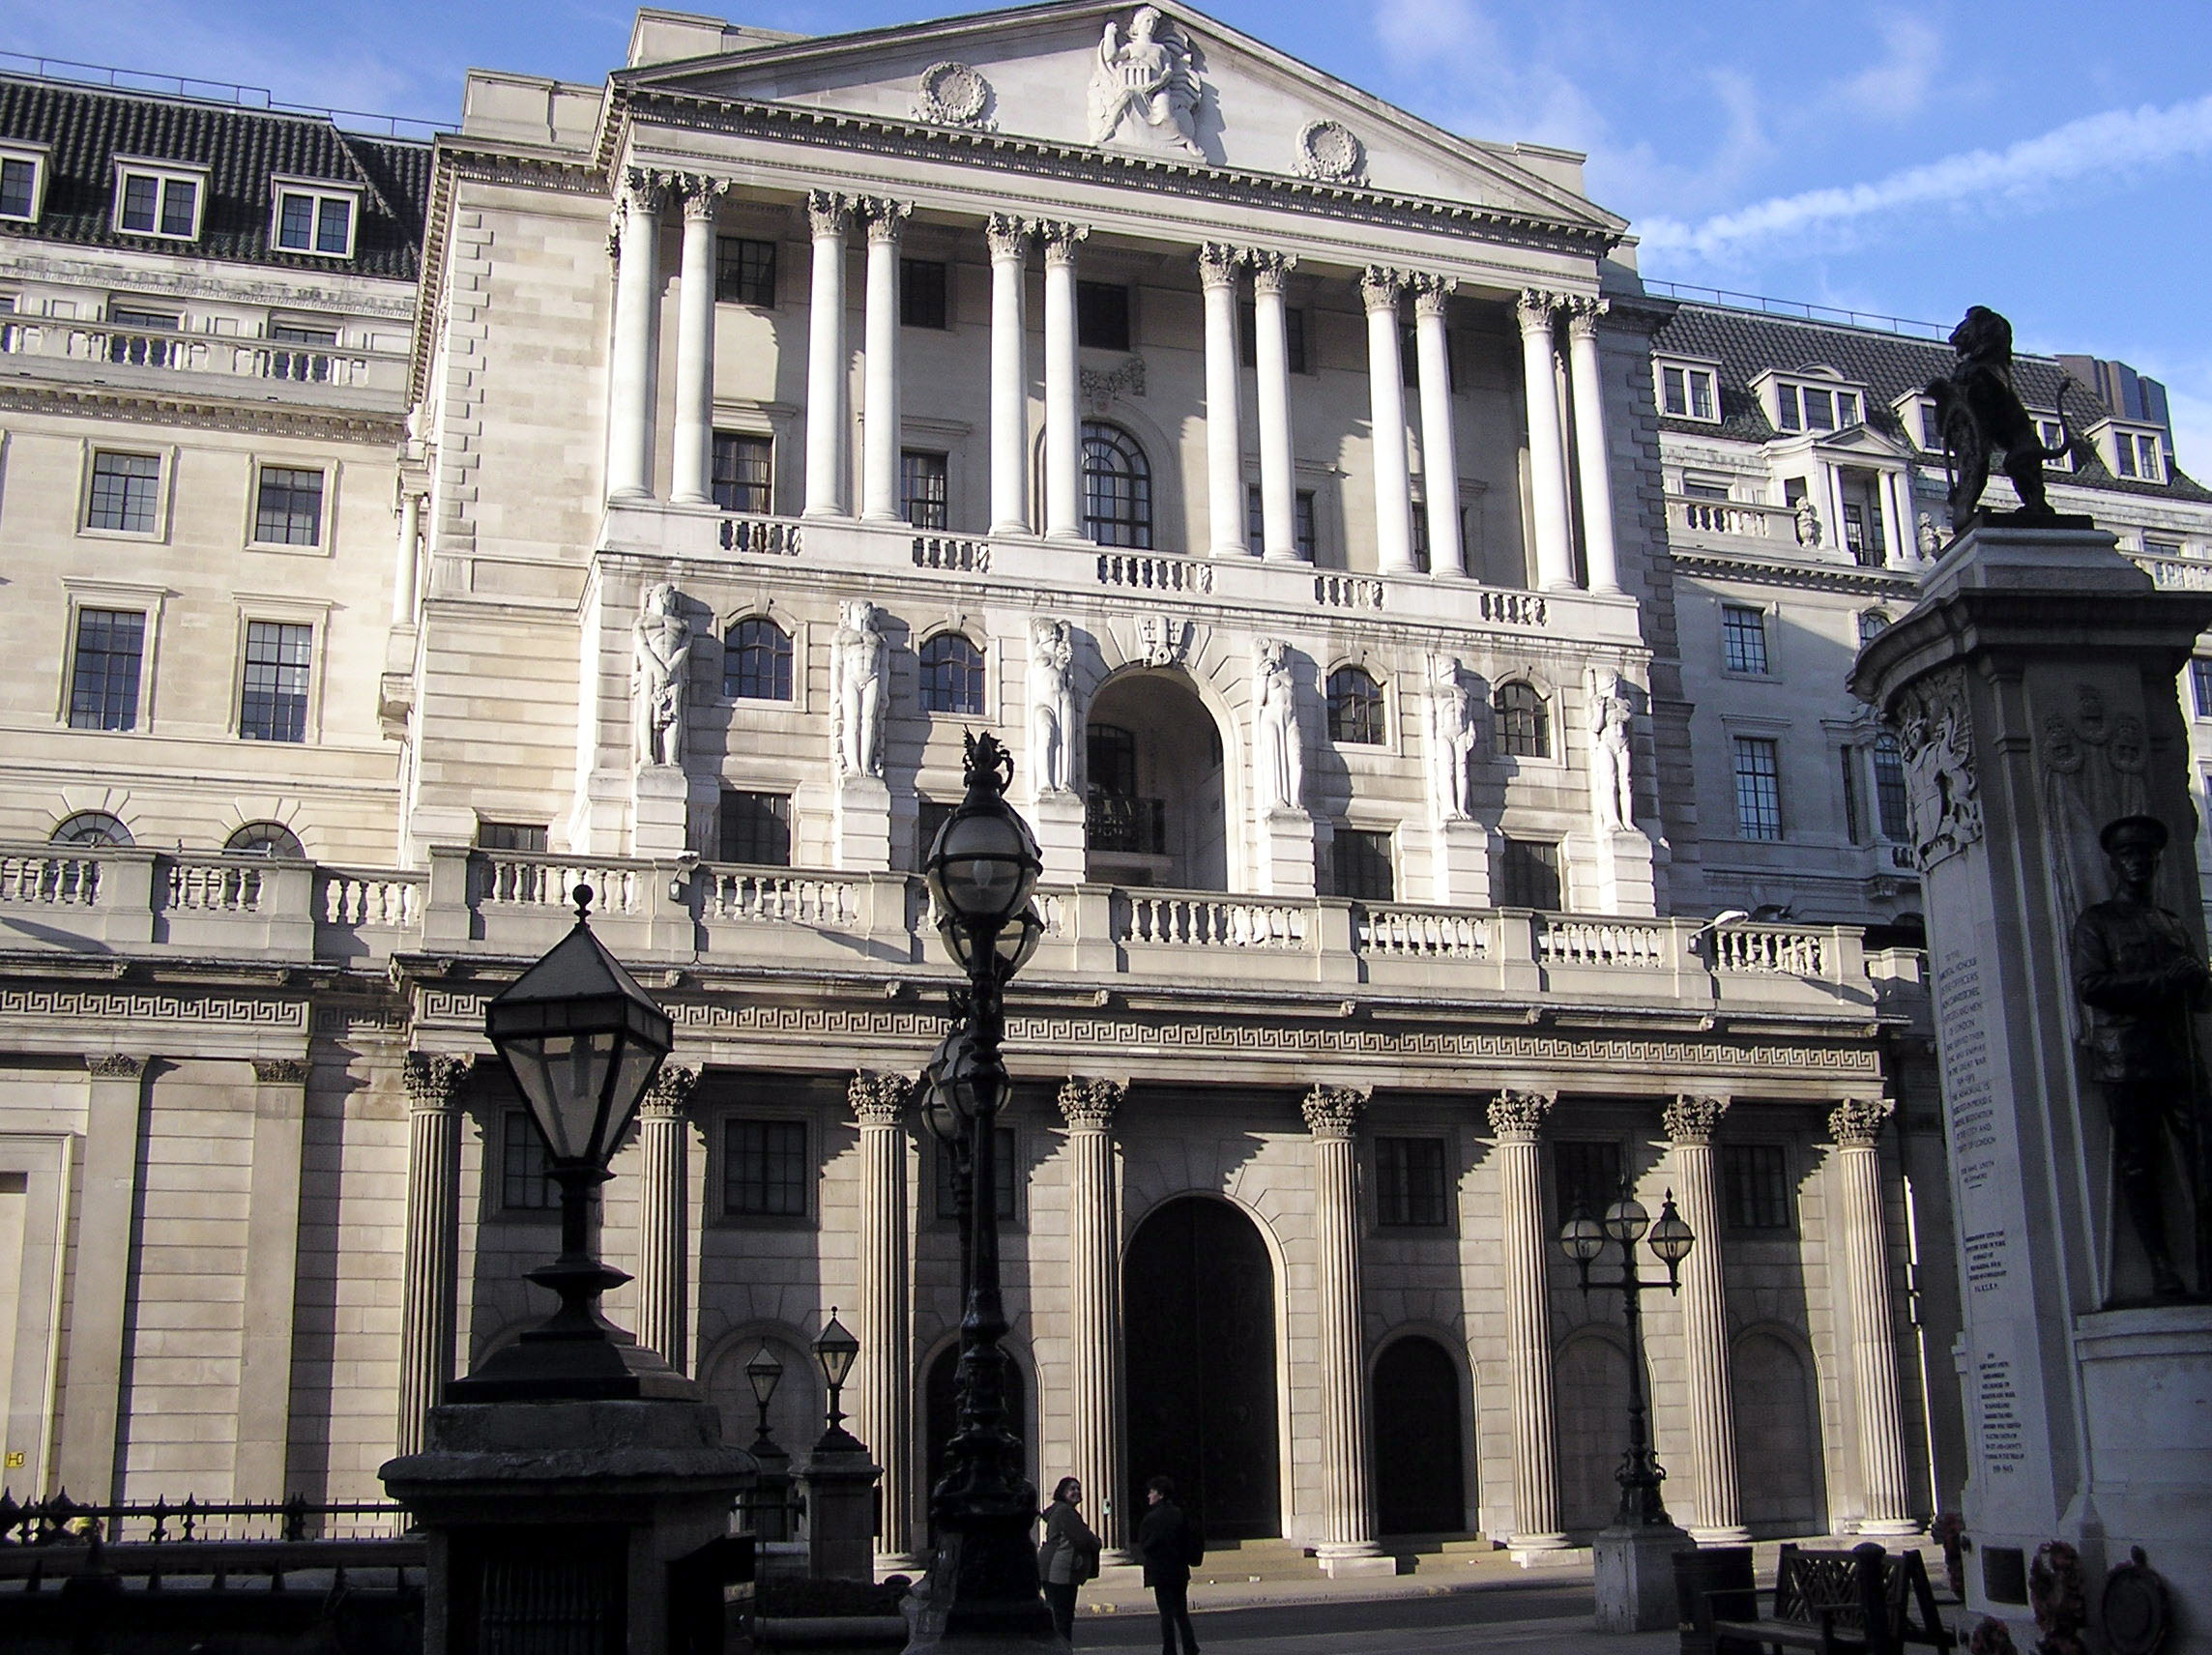 http://dic.academic.ru/pictures/wiki/files/76/London.bankofengland.arp.jpg